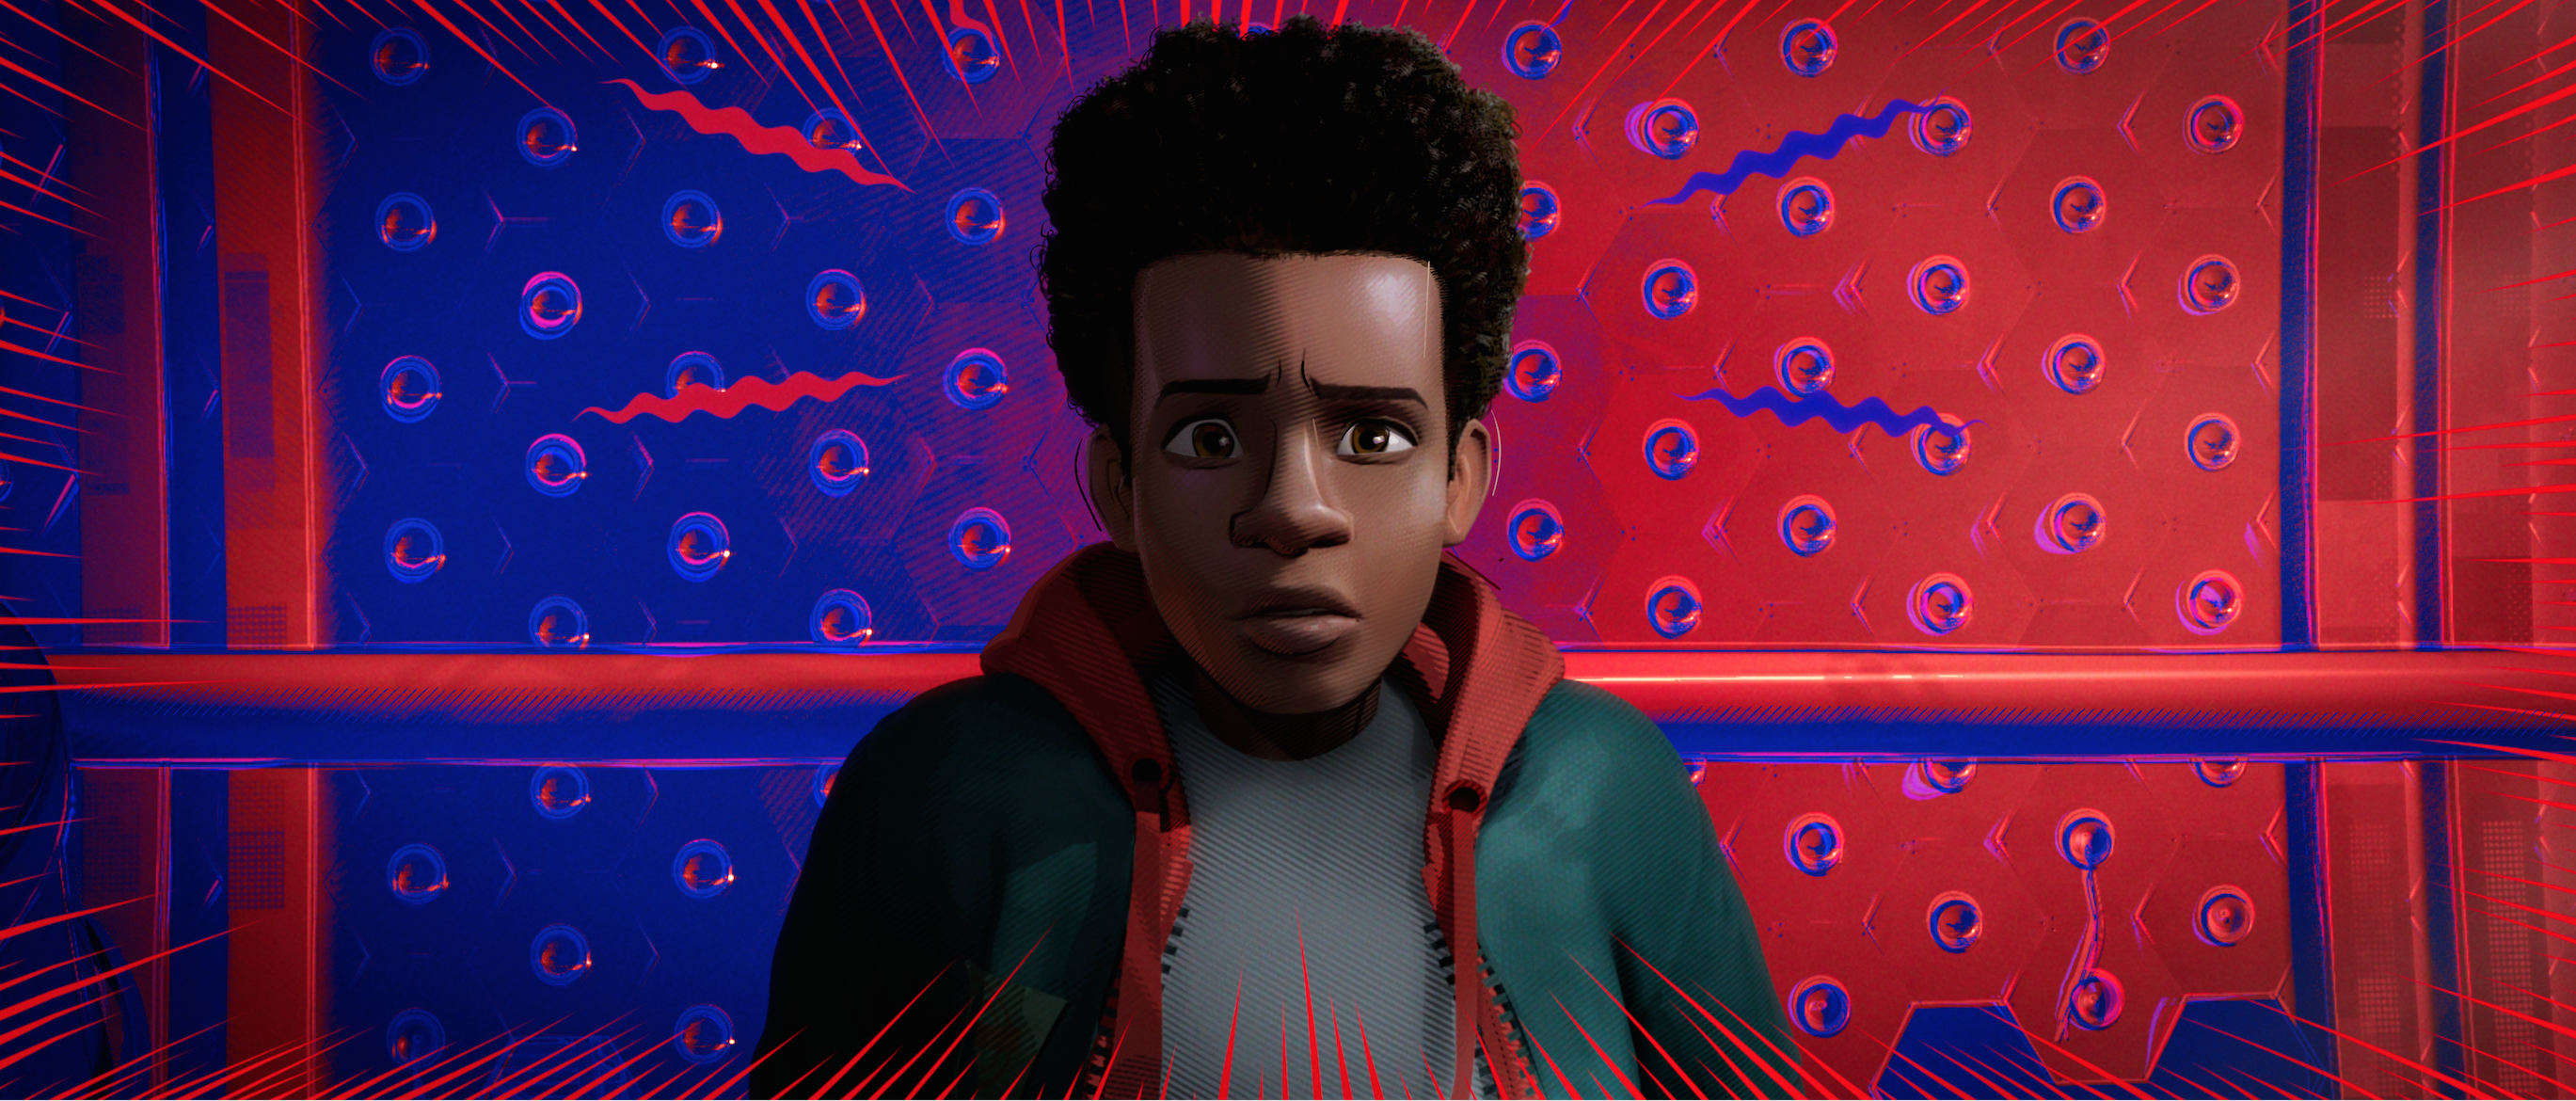 Miles Morales is voiced by Shameik Moore in  Spider-Man: Into the Spider-Verse